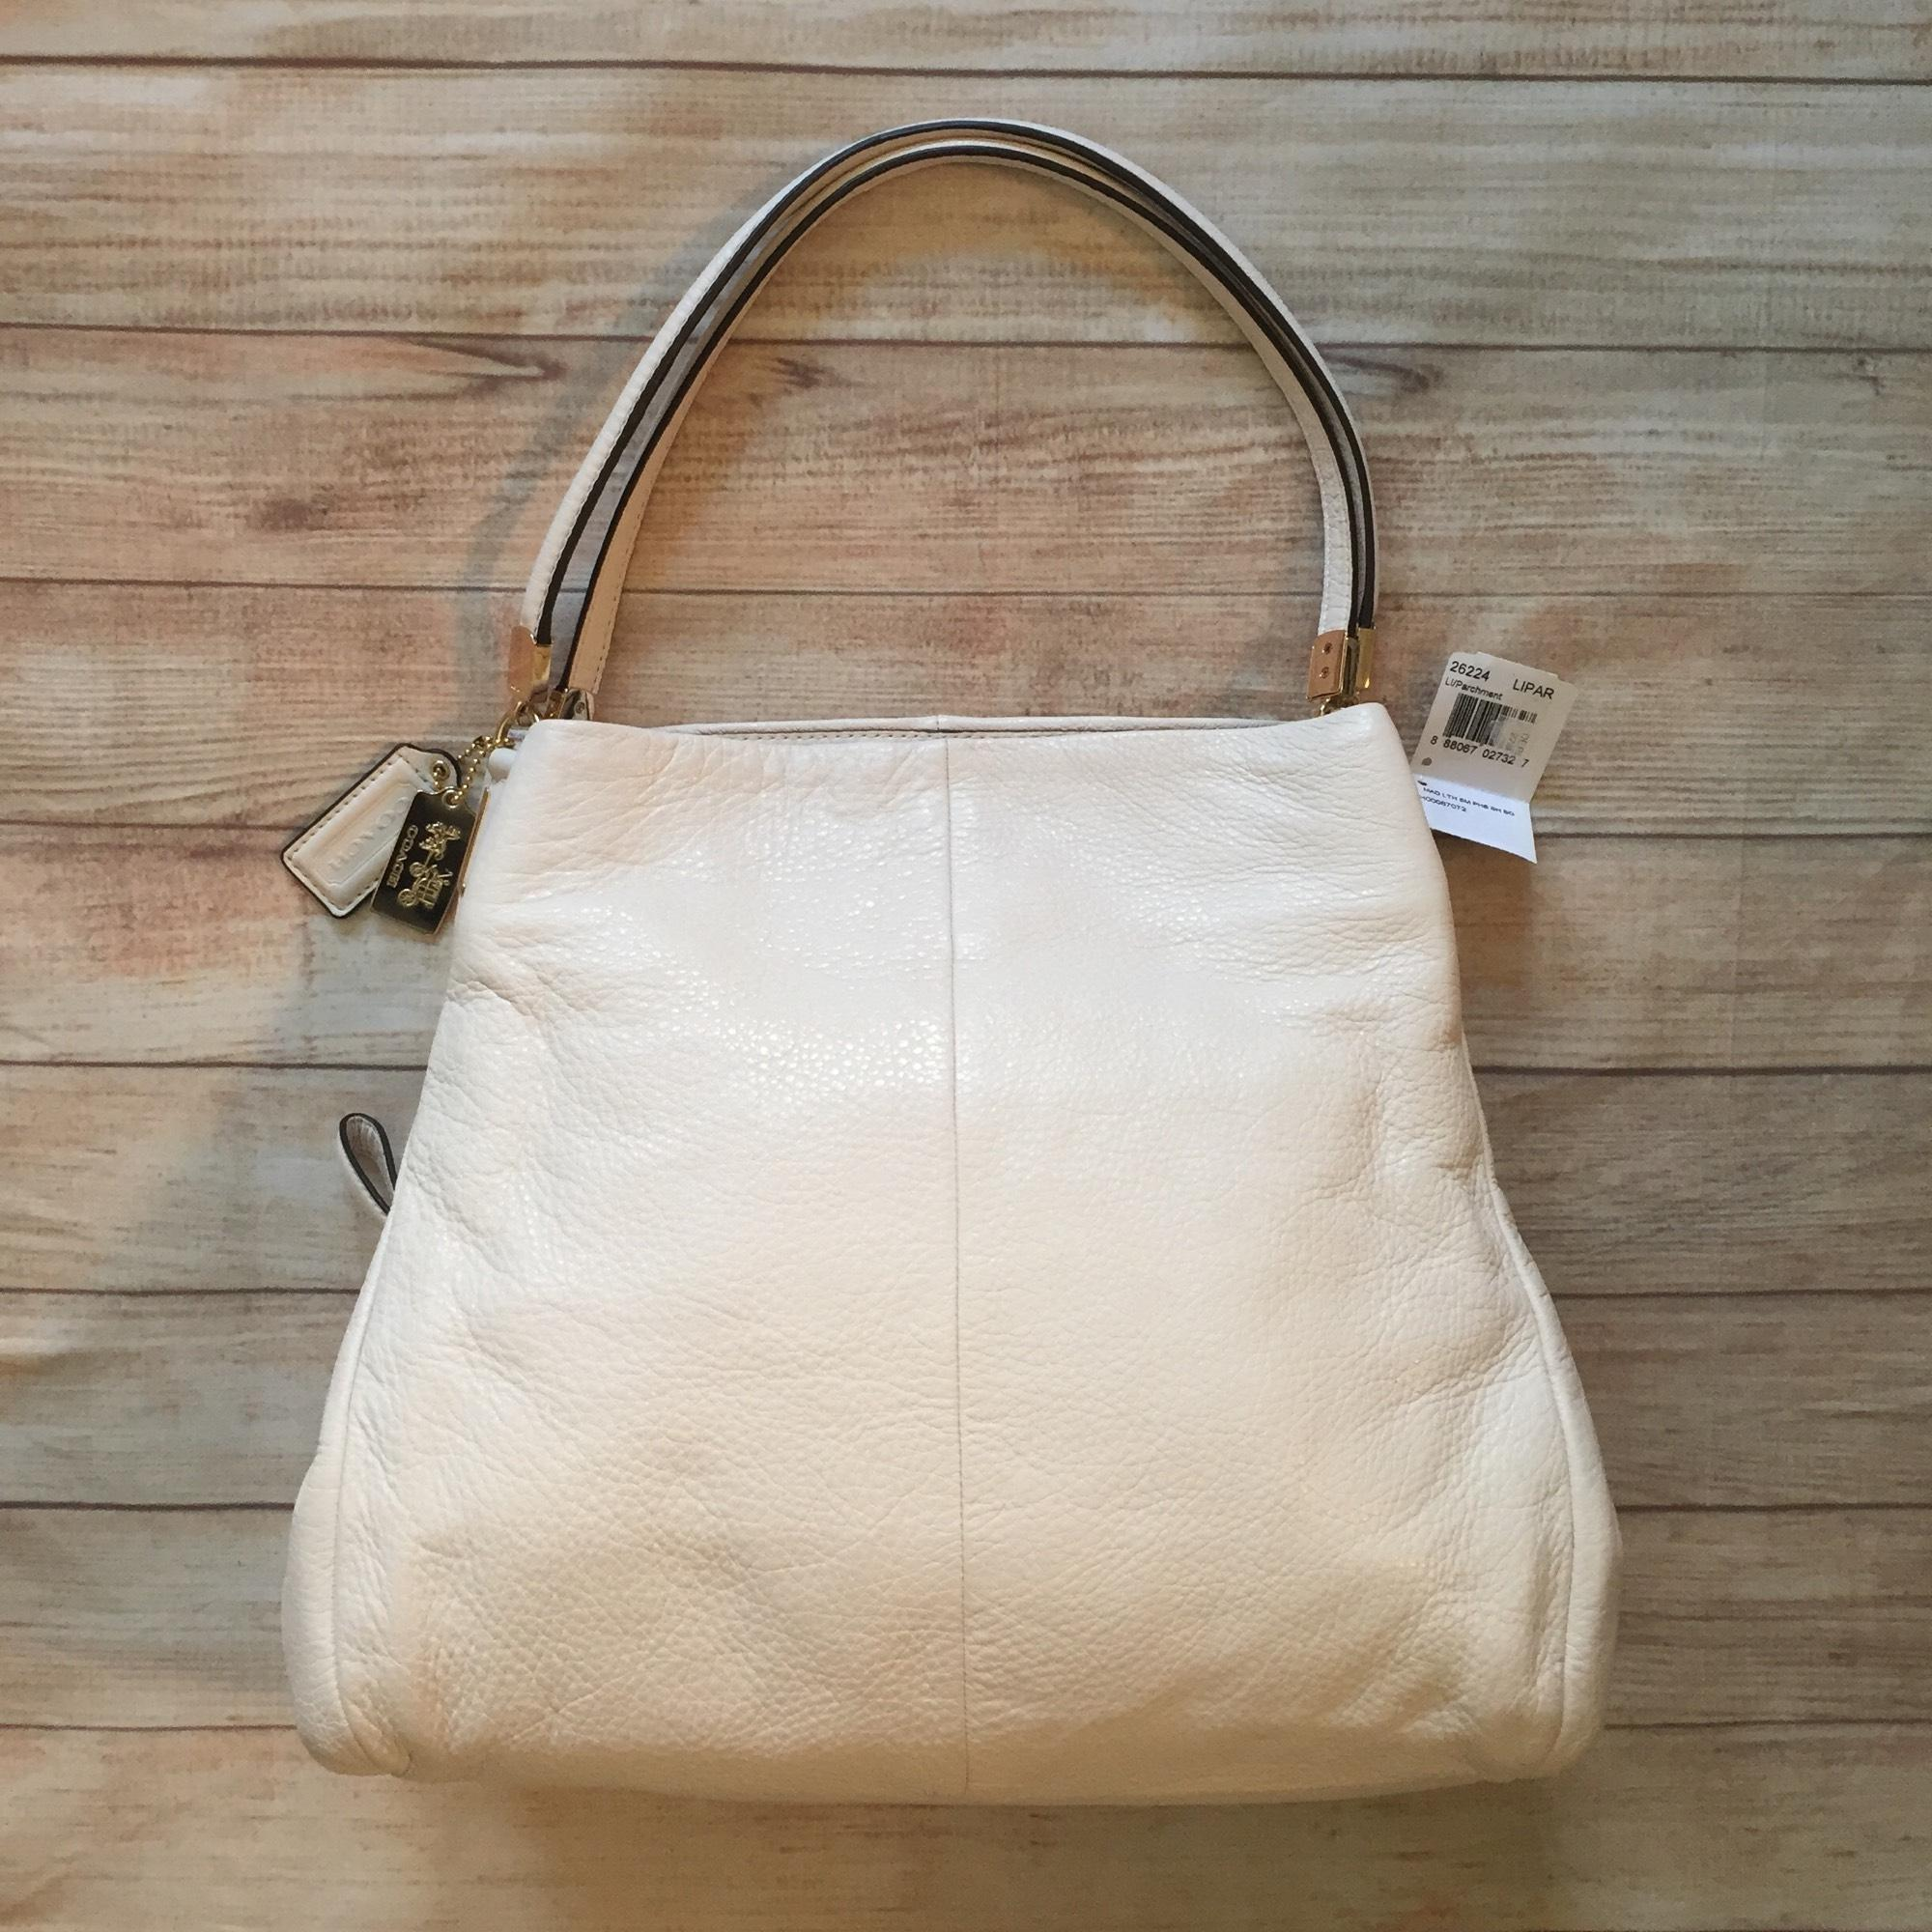 ... ivory leather shoulder bag tradesy bff44 c9fa5 uk coach bag 26224  madison small phoebe shoulder bag in leather pink orchard luxury brands  online ... e33a043558